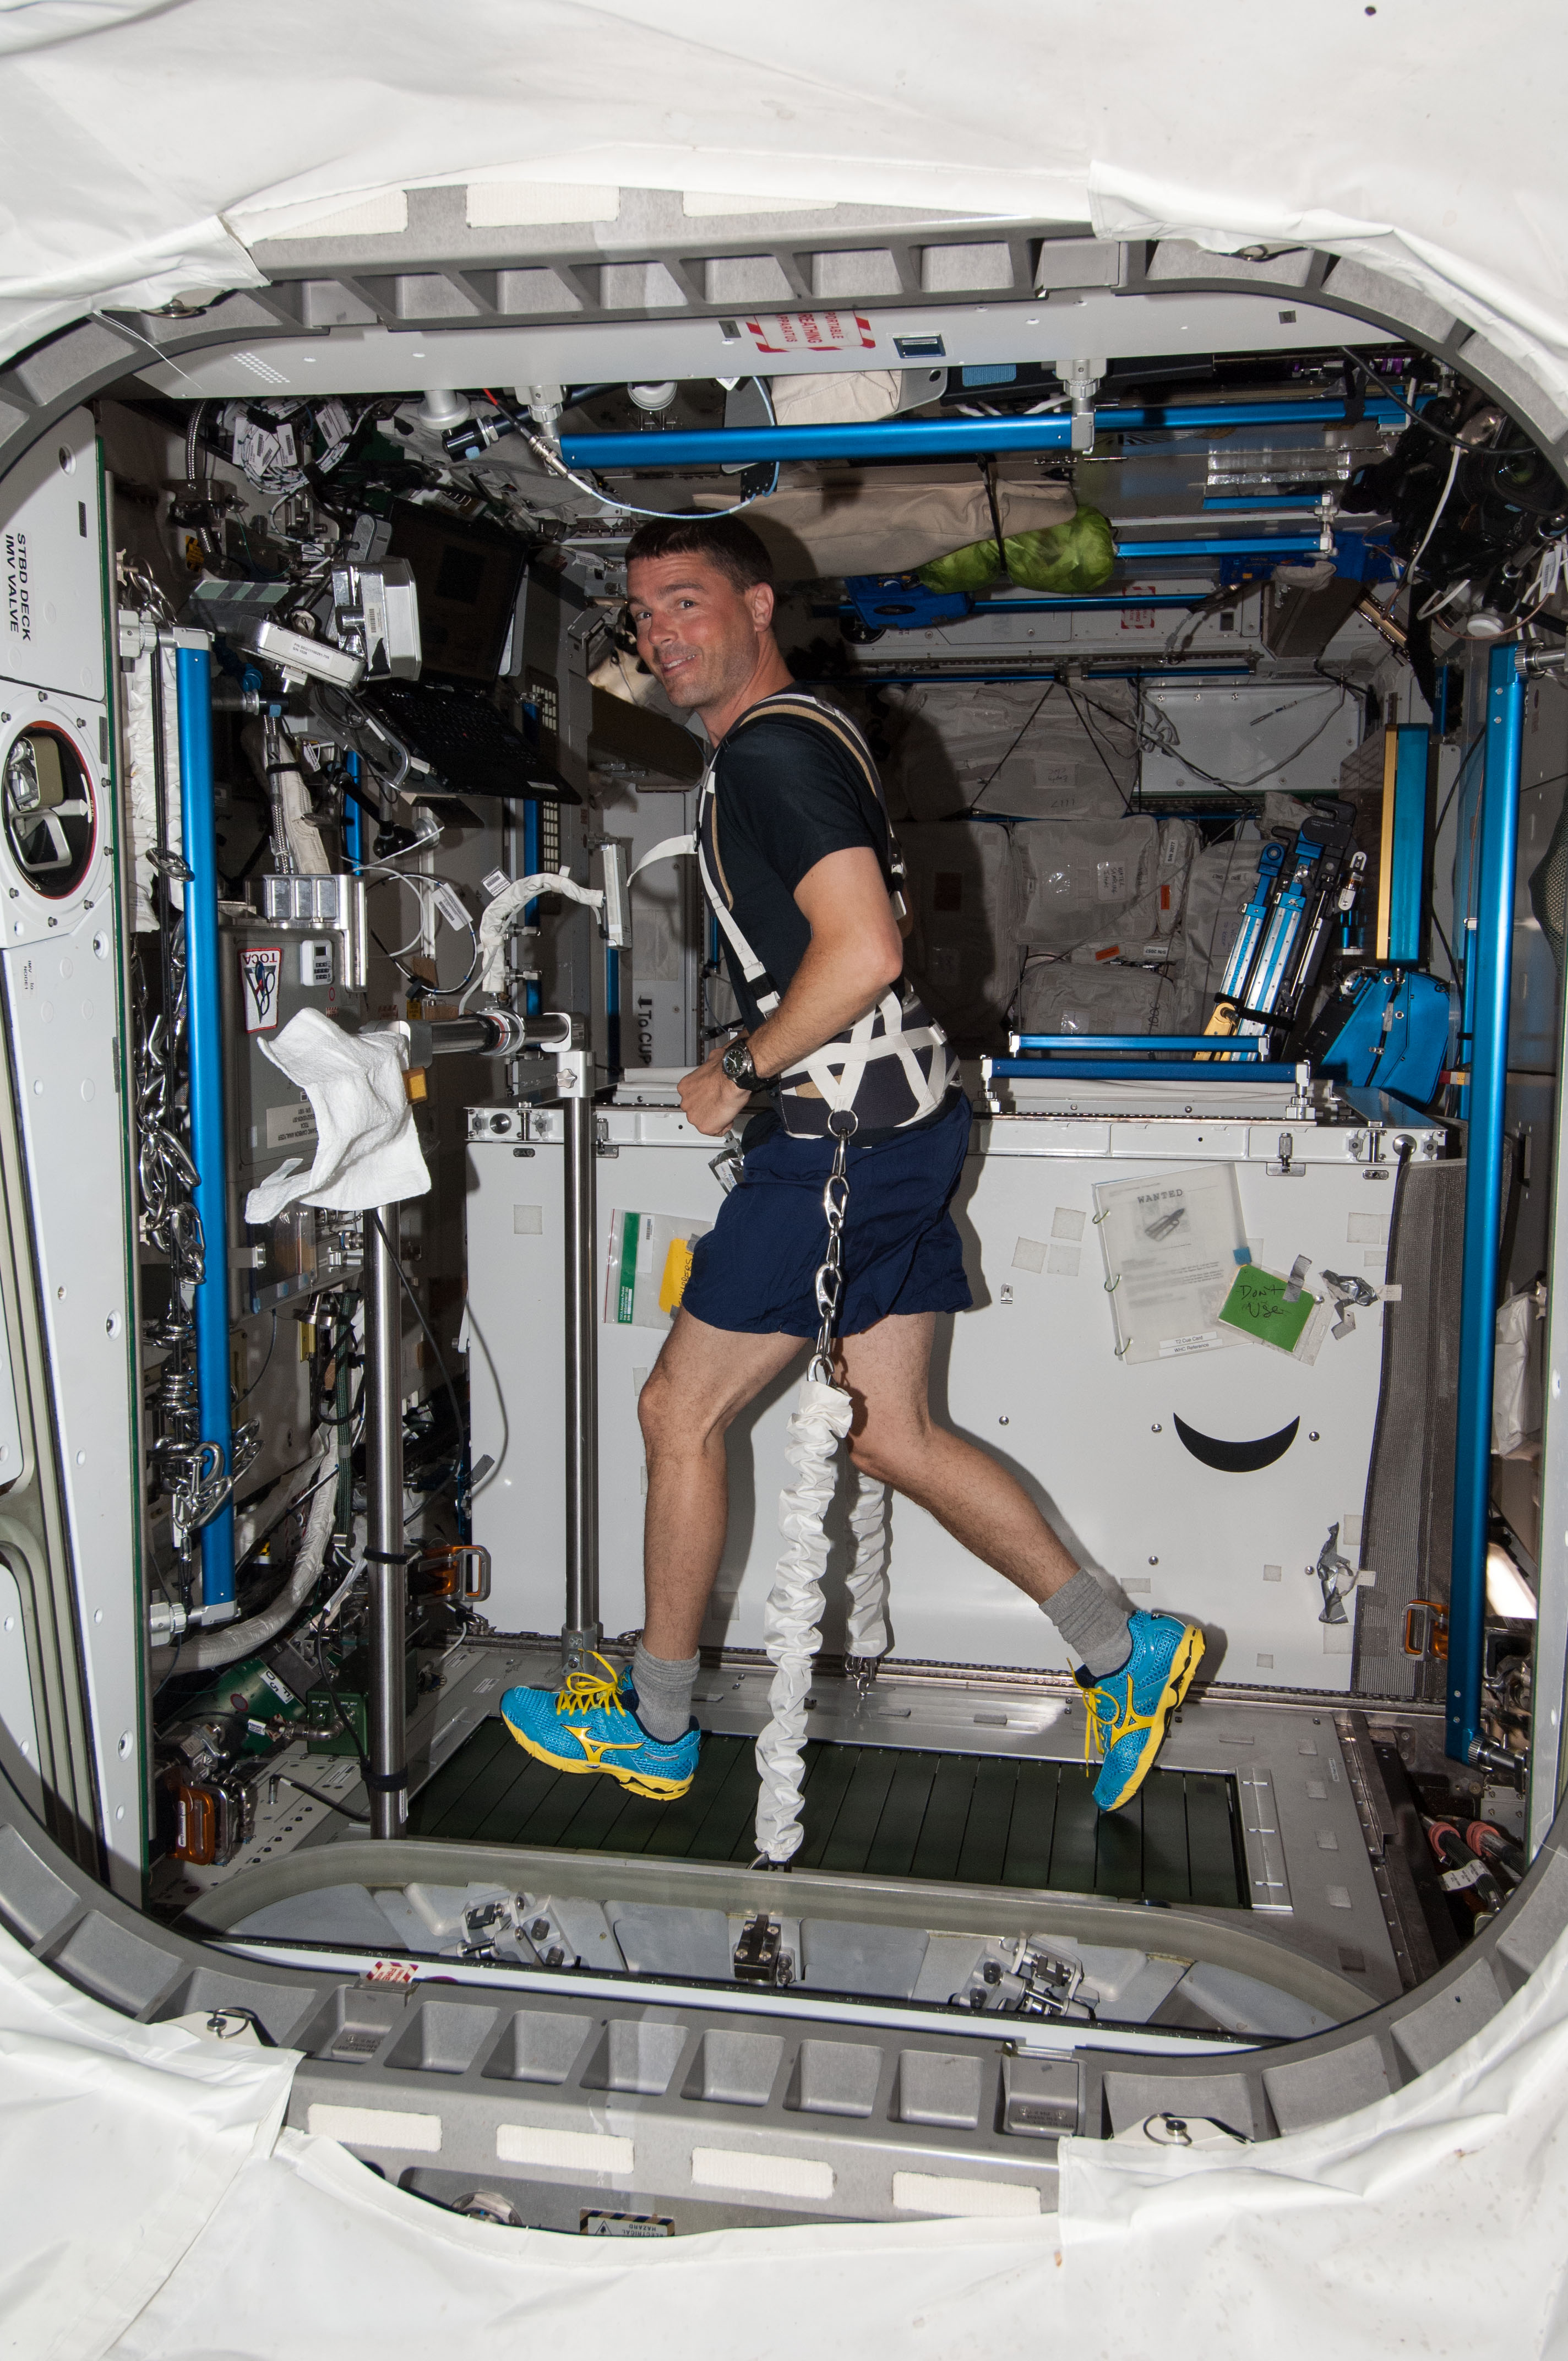 Astronaut Reid Wiseman, equipped with a bungee harness, exercises on the Combined Operational Load Bearing External Resistance Treadmill (COLBERT) in the Tranquility node of the International Space Station.